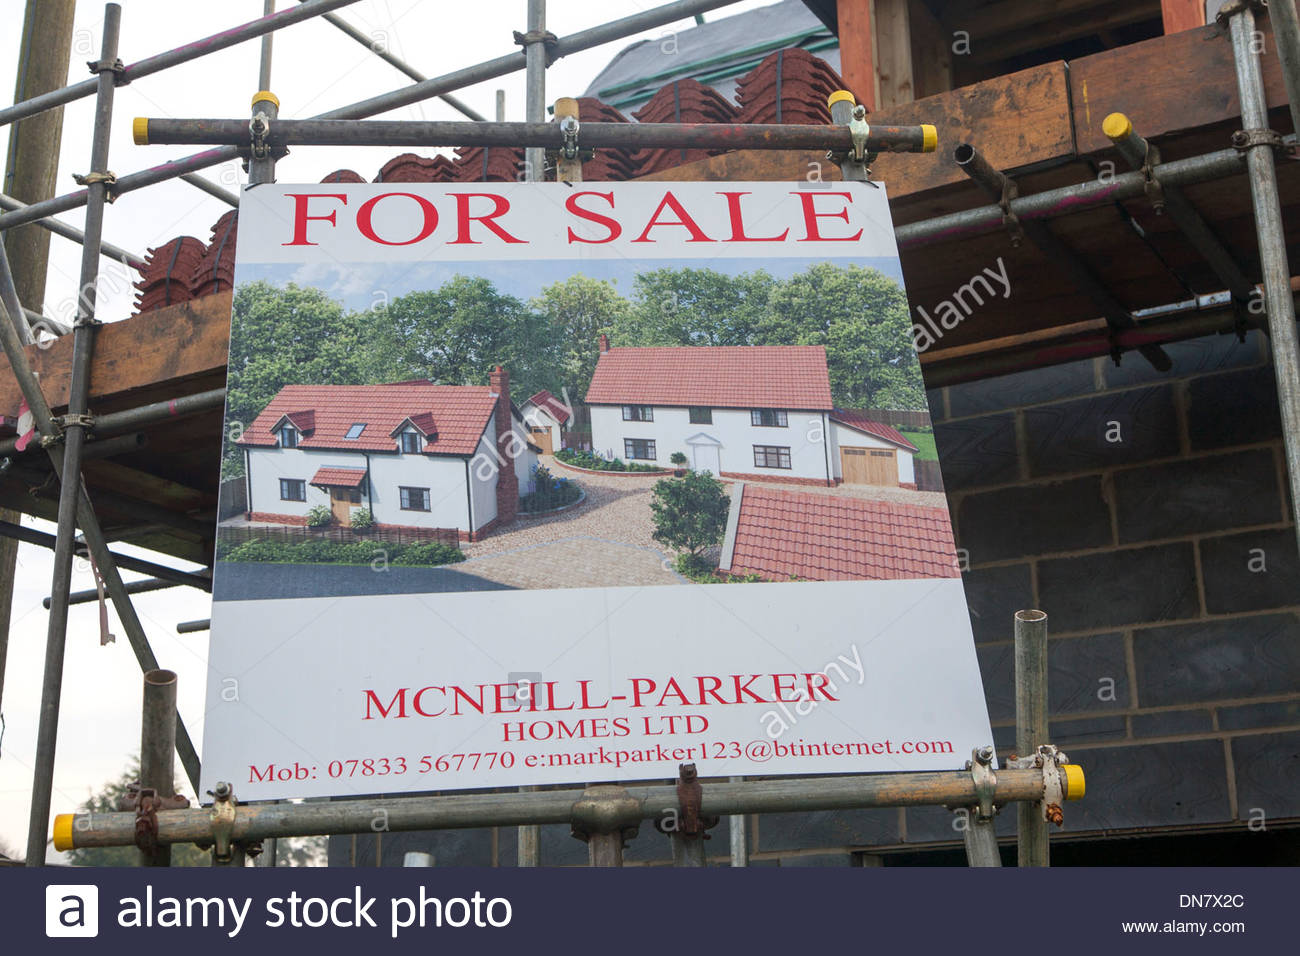 New house for sale advert at building construction site UK - Stock Image